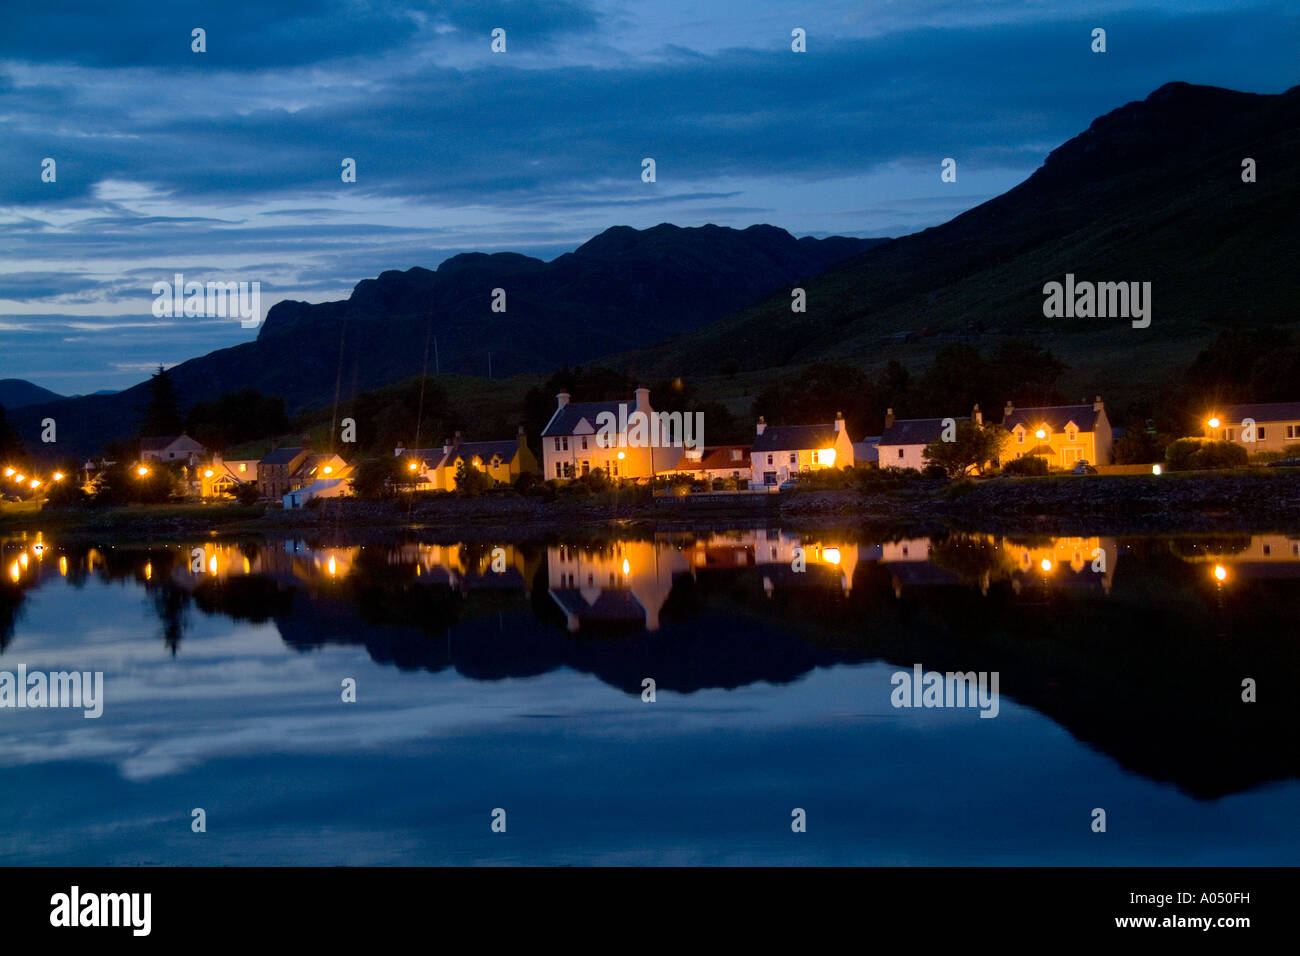 Beautiful night photo of small village of Dornie with refections in Western Highlands Scotlands - Stock Image